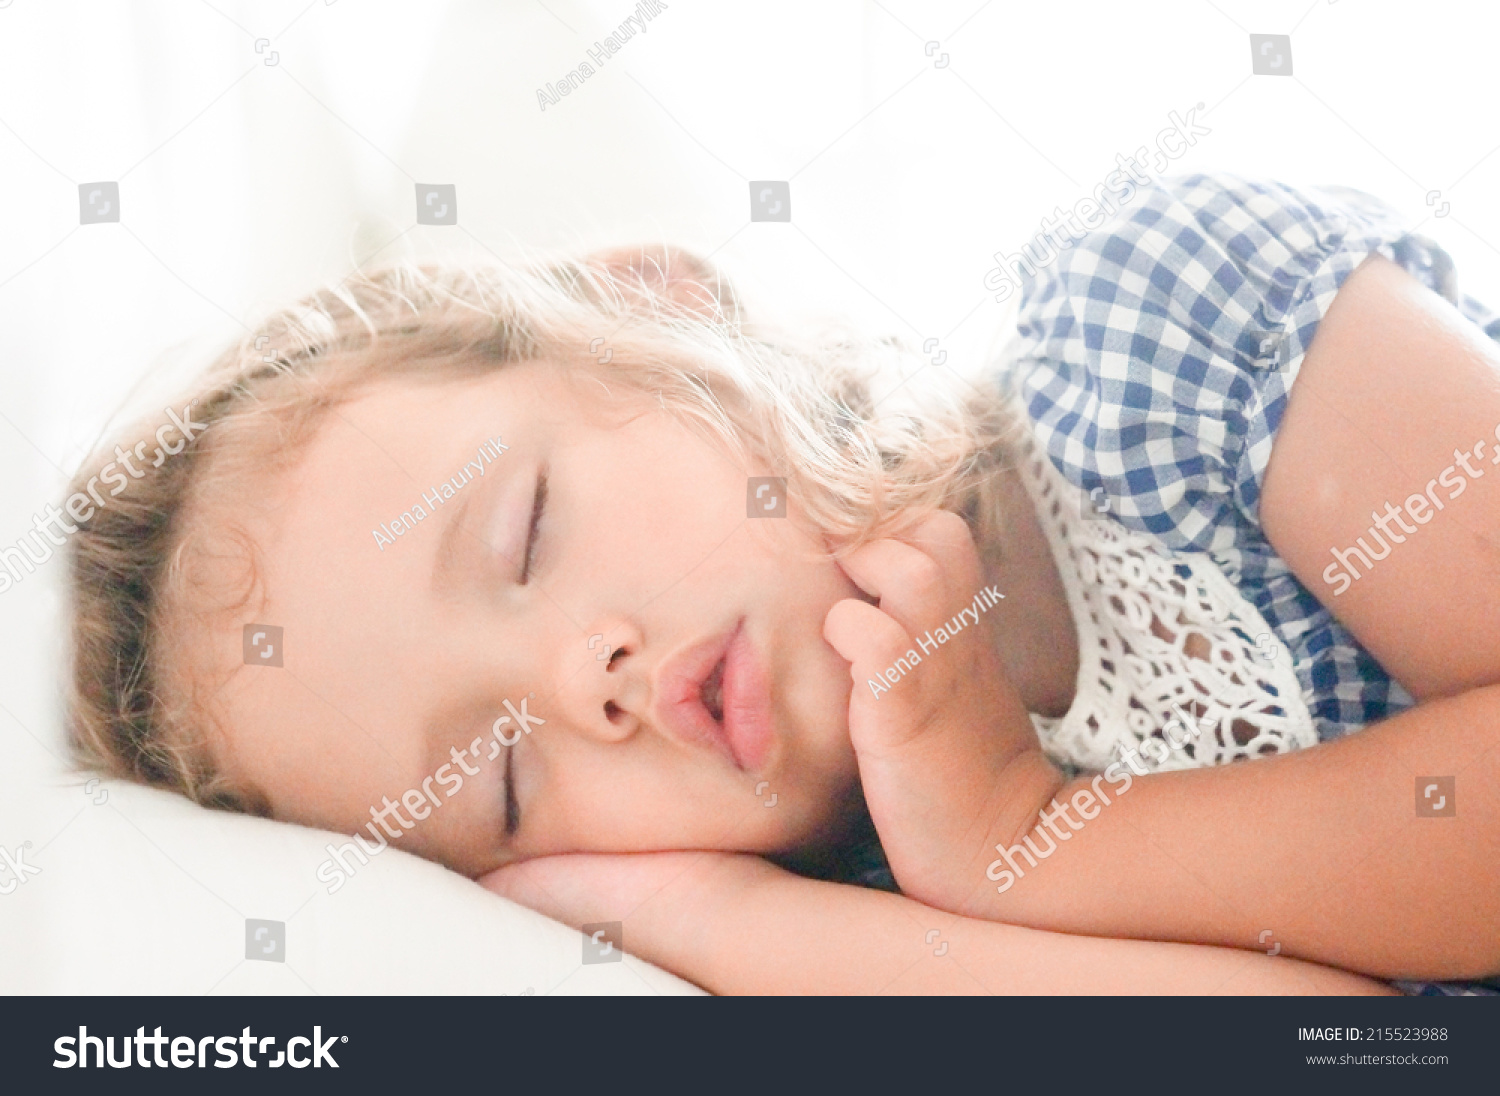 cute sleeping baby girl stock photo (edit now) 215523988 - shutterstock